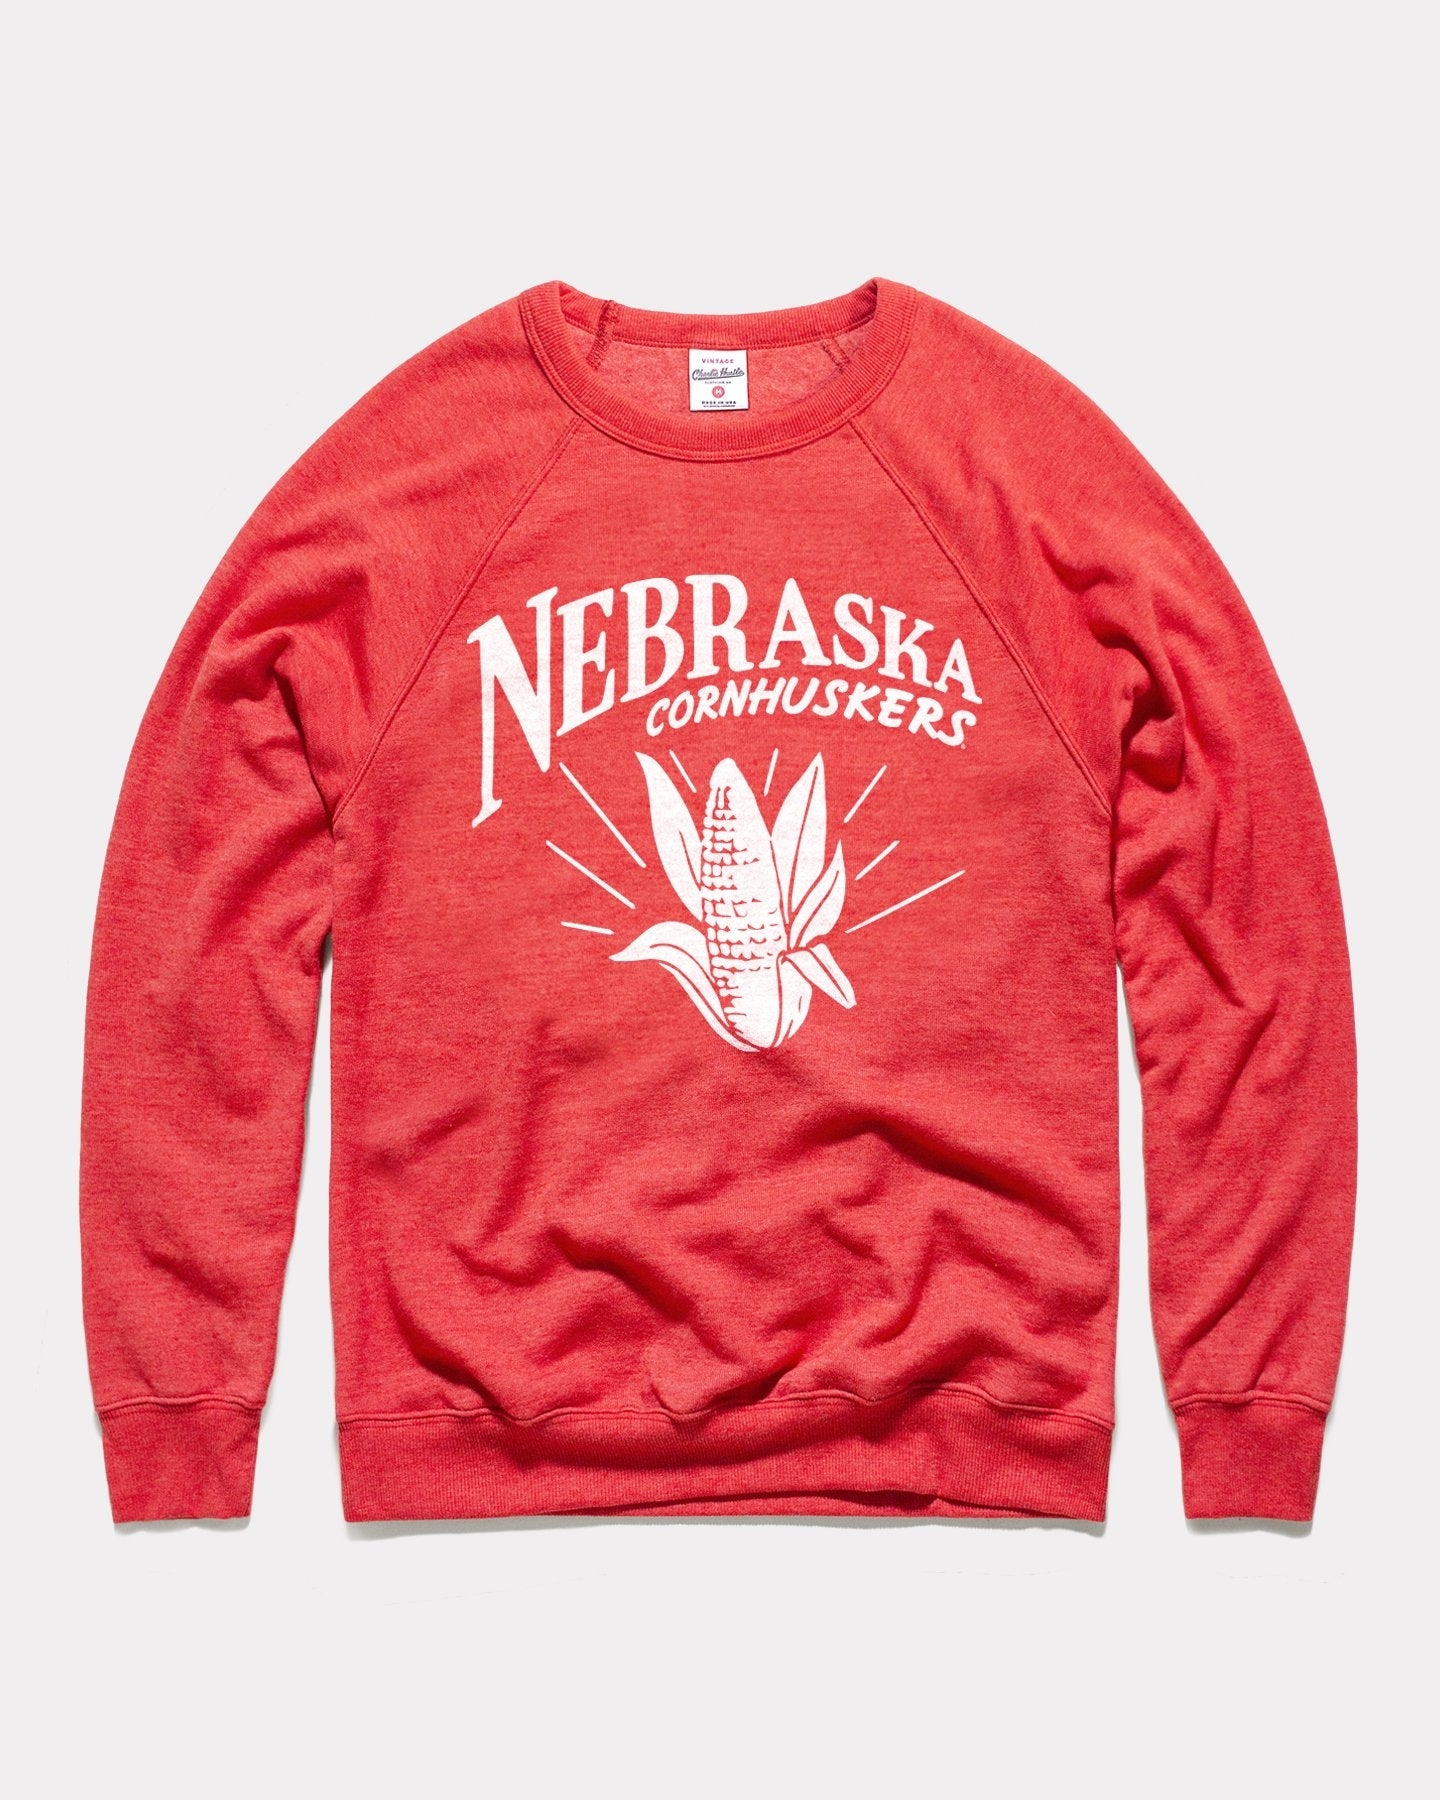 Red University Of Nebraska Cornhuskers Pennant Vintage Crewneck Sweatshirt